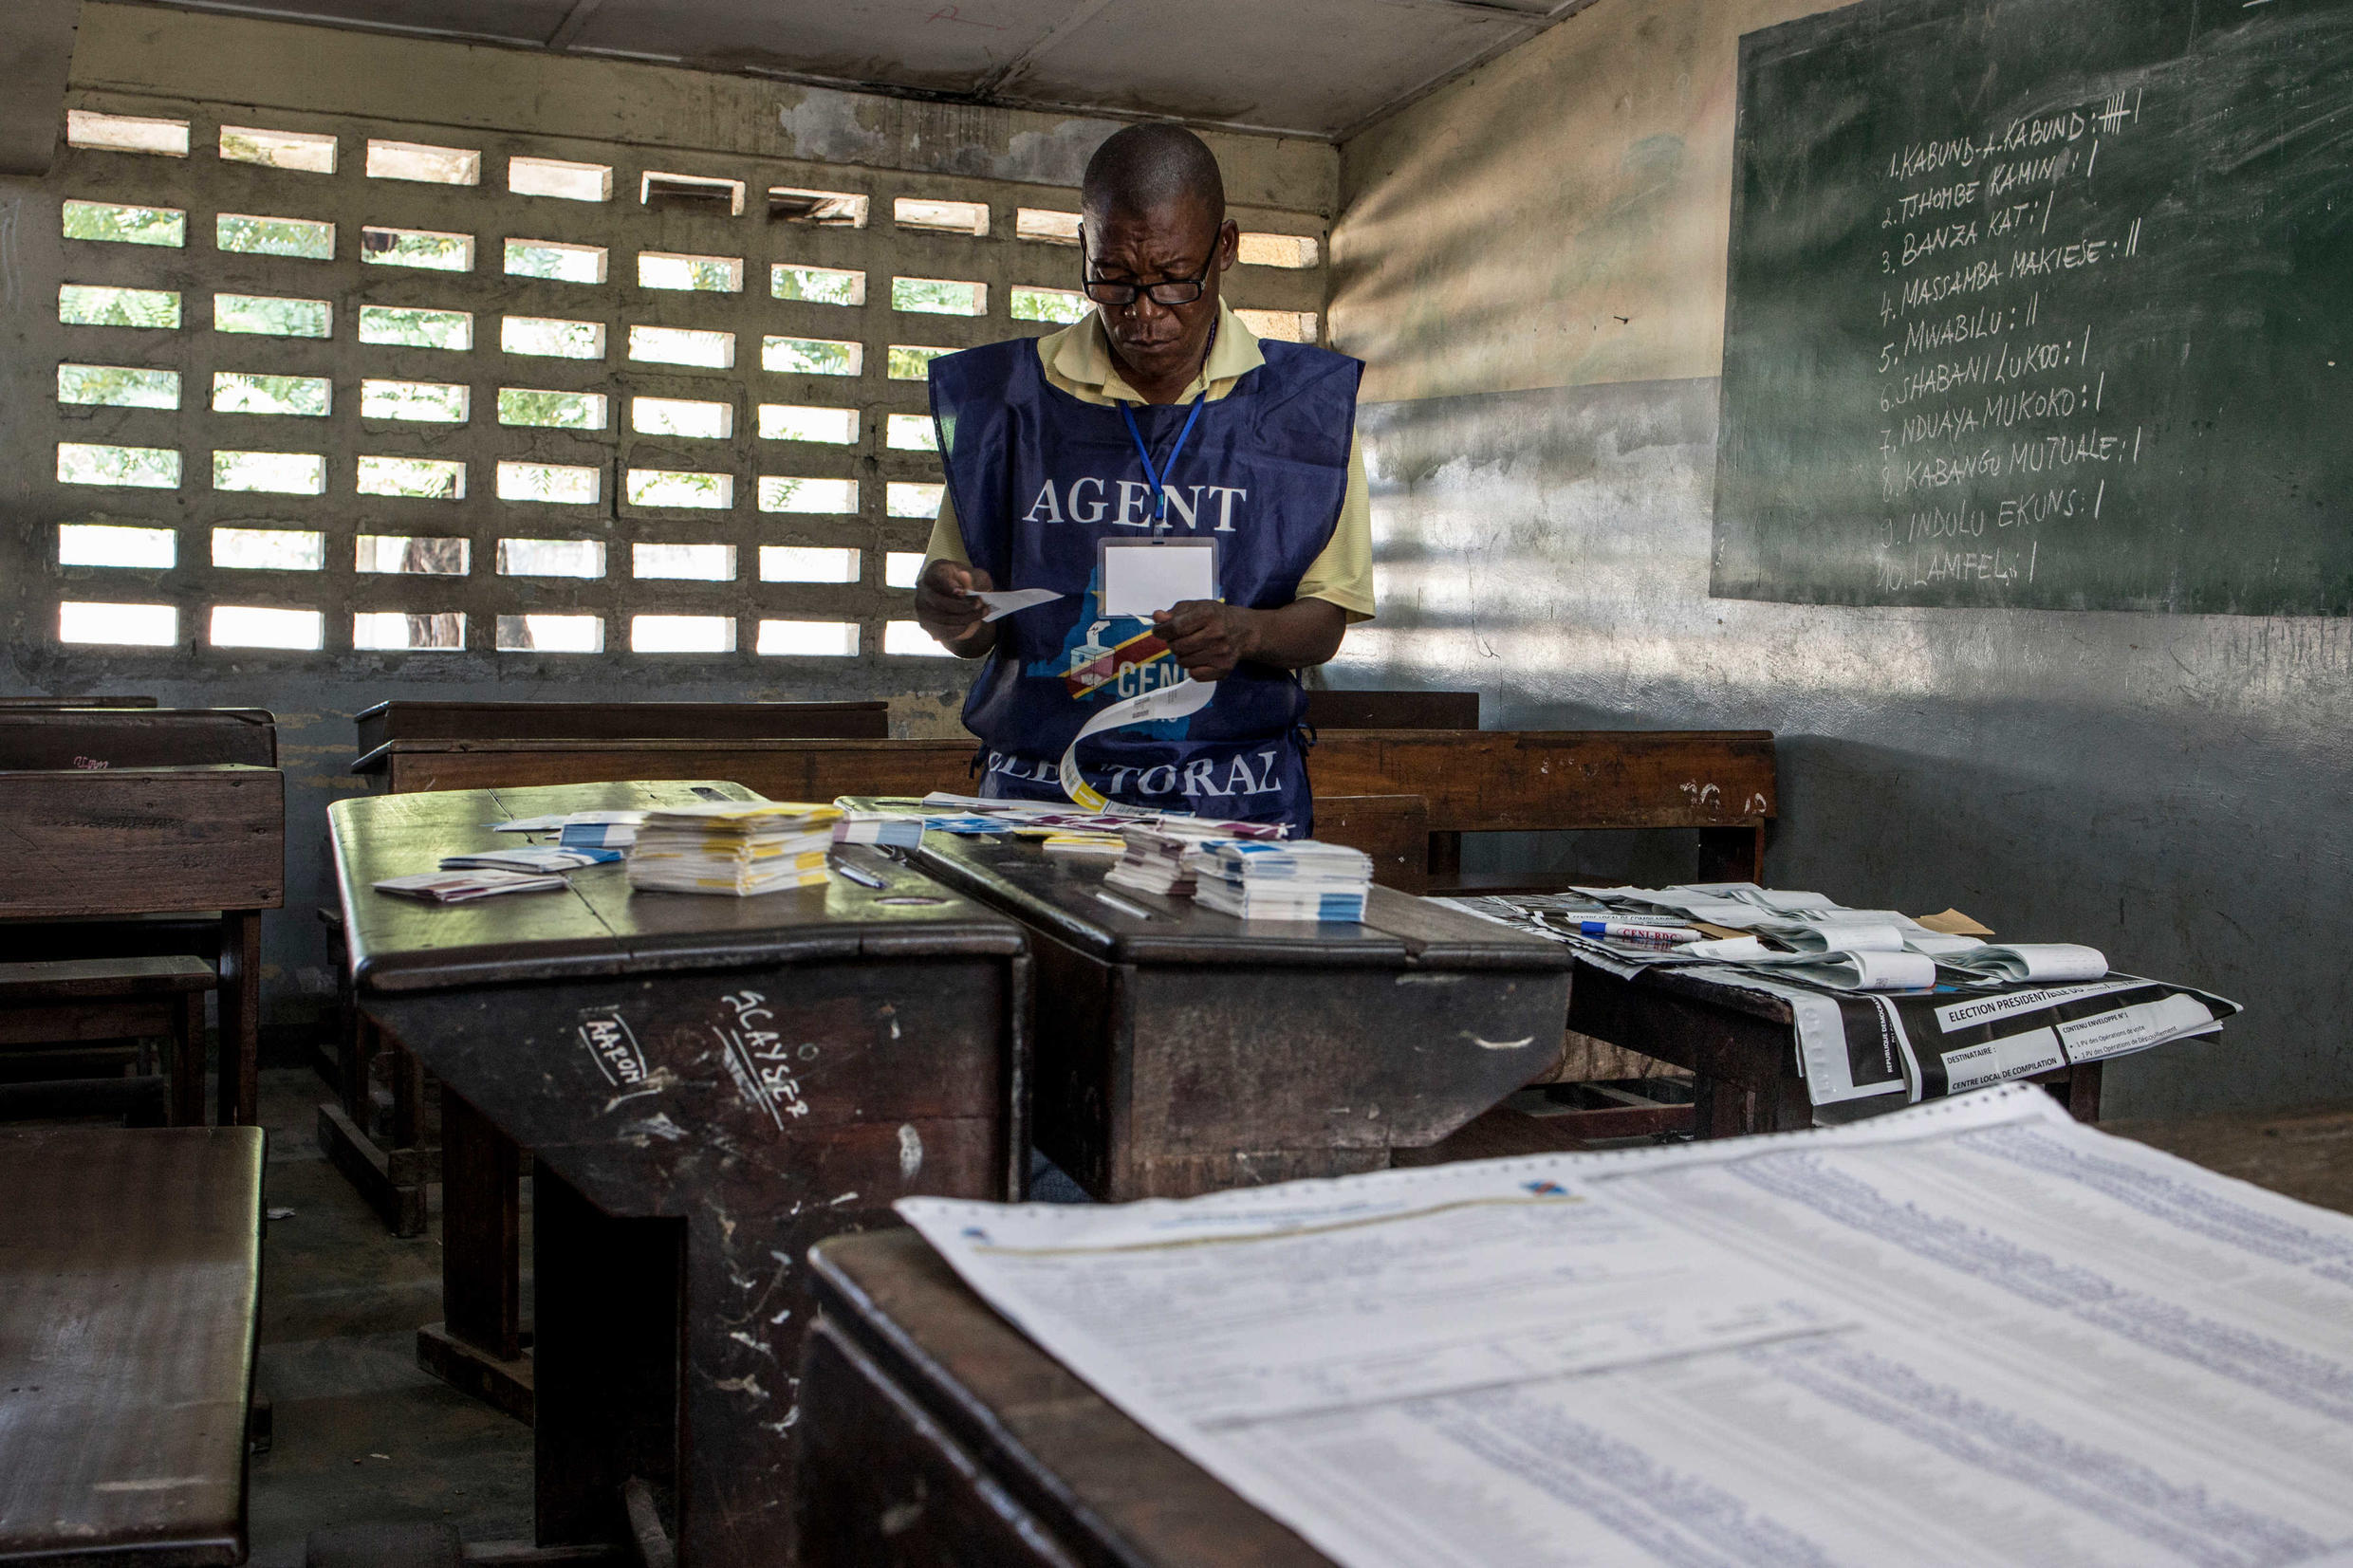 An electoral official arranges ballot papers at a polling station in Kinshasa the morning after the vote, 31 December 2018.